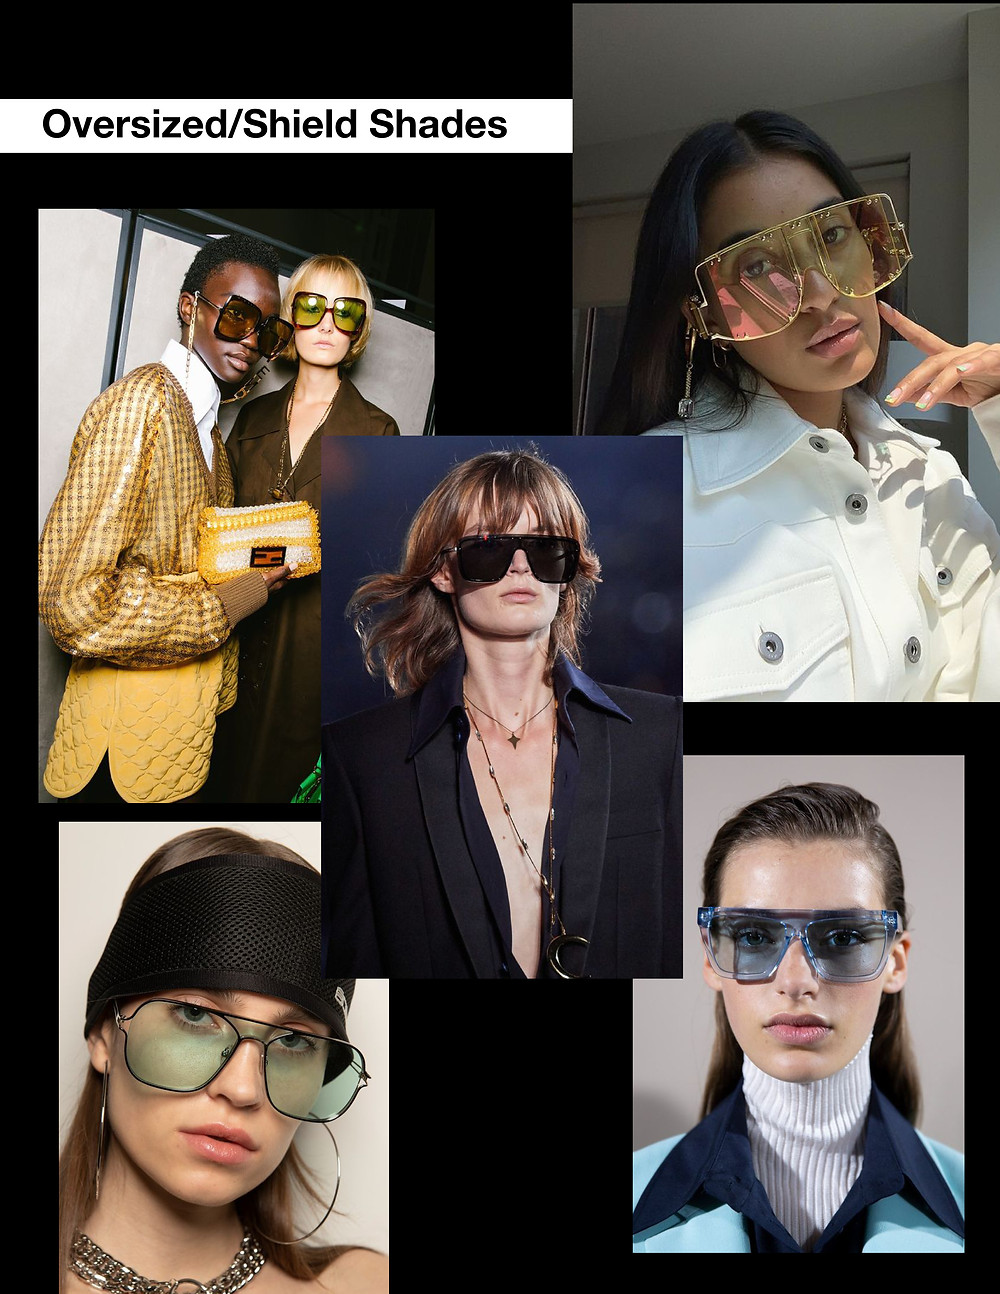 Oversized sunglasses shades, Shields, stylist selection, shopping guide, fashion trends, summer 2021